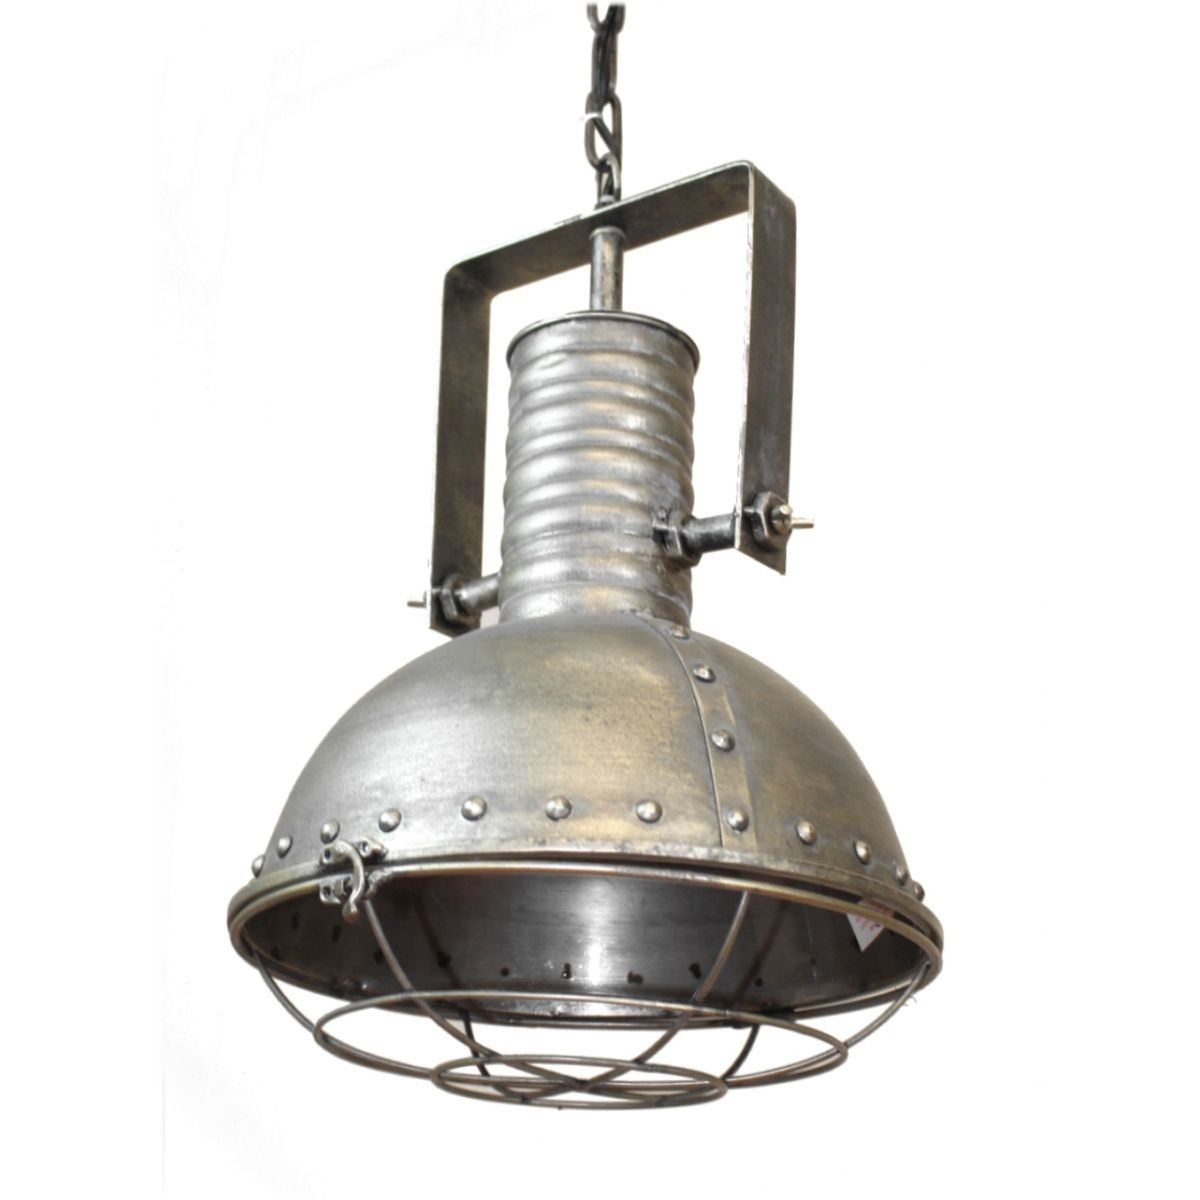 Industrial Caged Pendant With Rivets: Industrial Pendant Factory Dock Light In Natural Steel